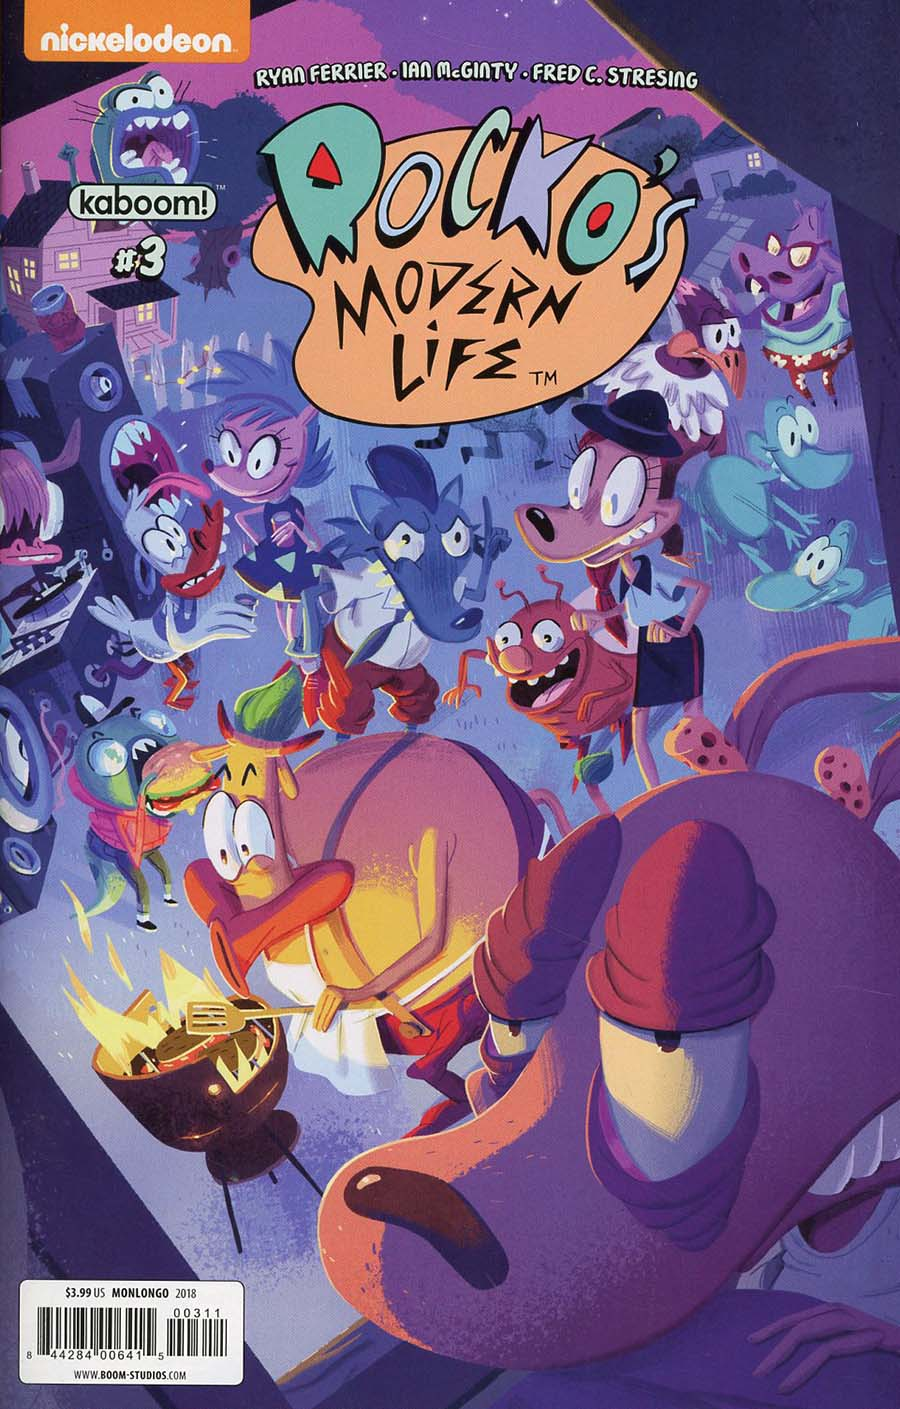 Rockos Modern Life Vol 2 #3 Cover A Regular Jorge Monlongo Cover